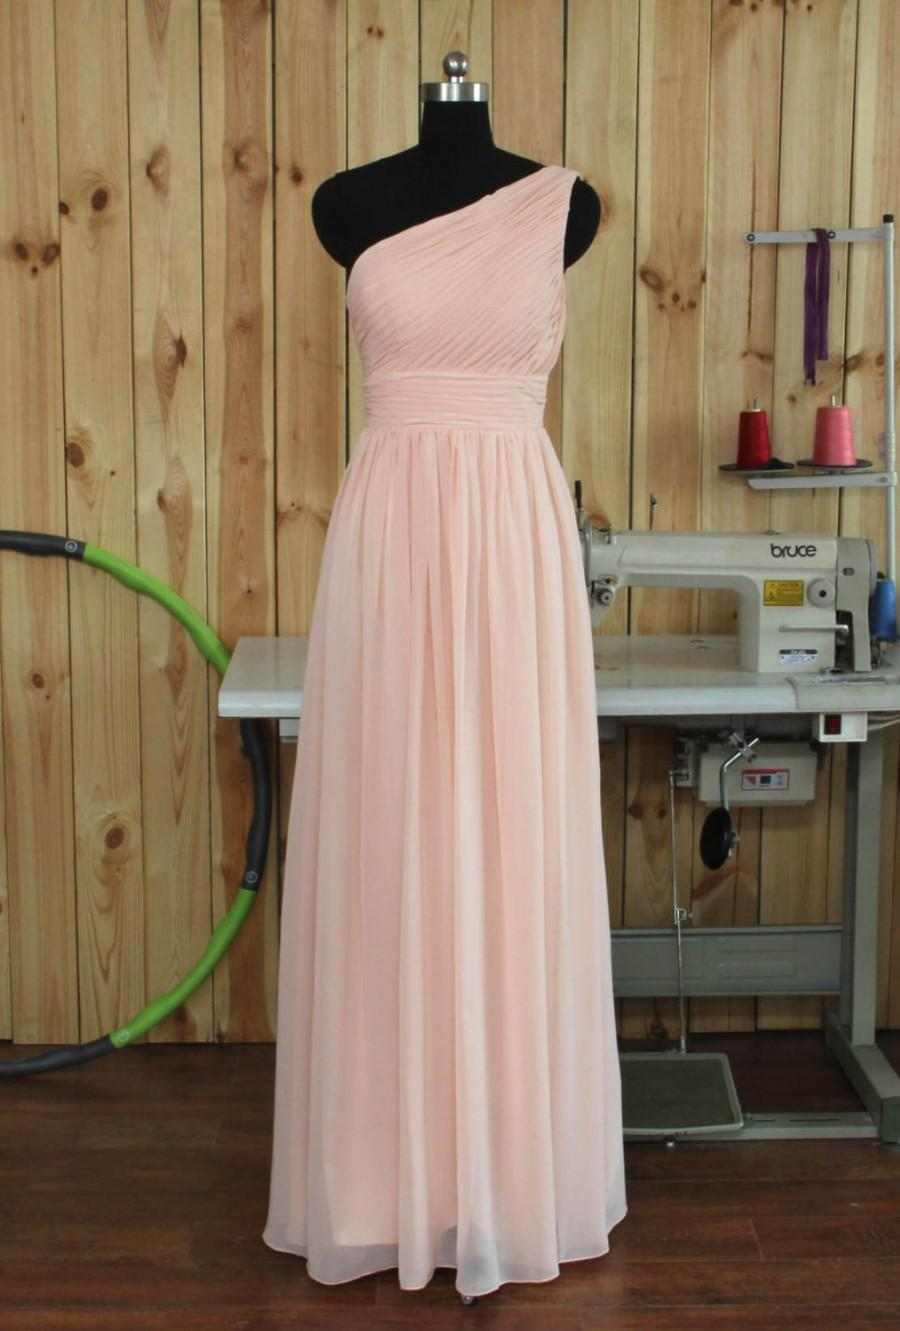 Wedding - 2015 Custom Made Long Chiffon Bridesmaid Dress, One Shoulder Chiffon Bridesmaid Dress, Maid of Honor Dress, Wedding Party Dress, Prom Dress